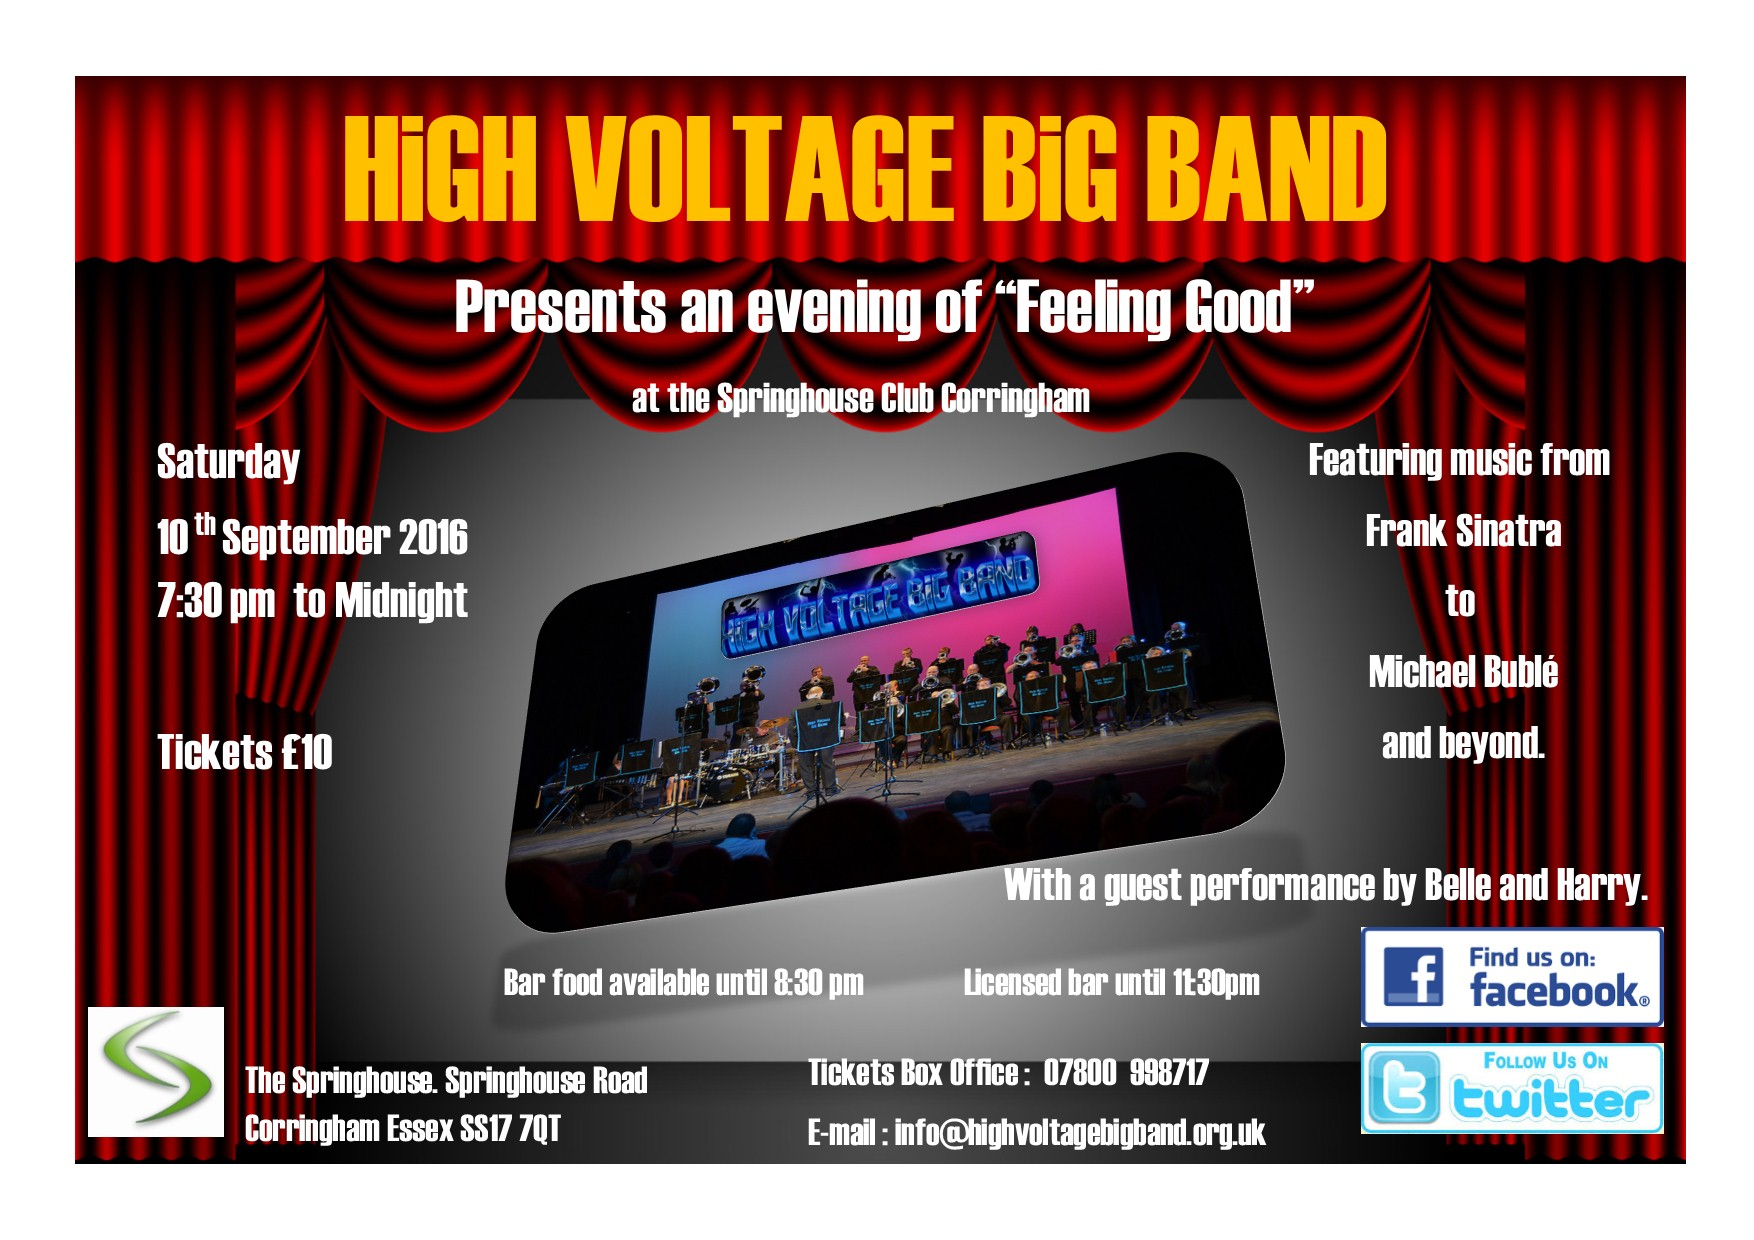 High Voltage Big Band Presents an evening of 'Feeling Good'